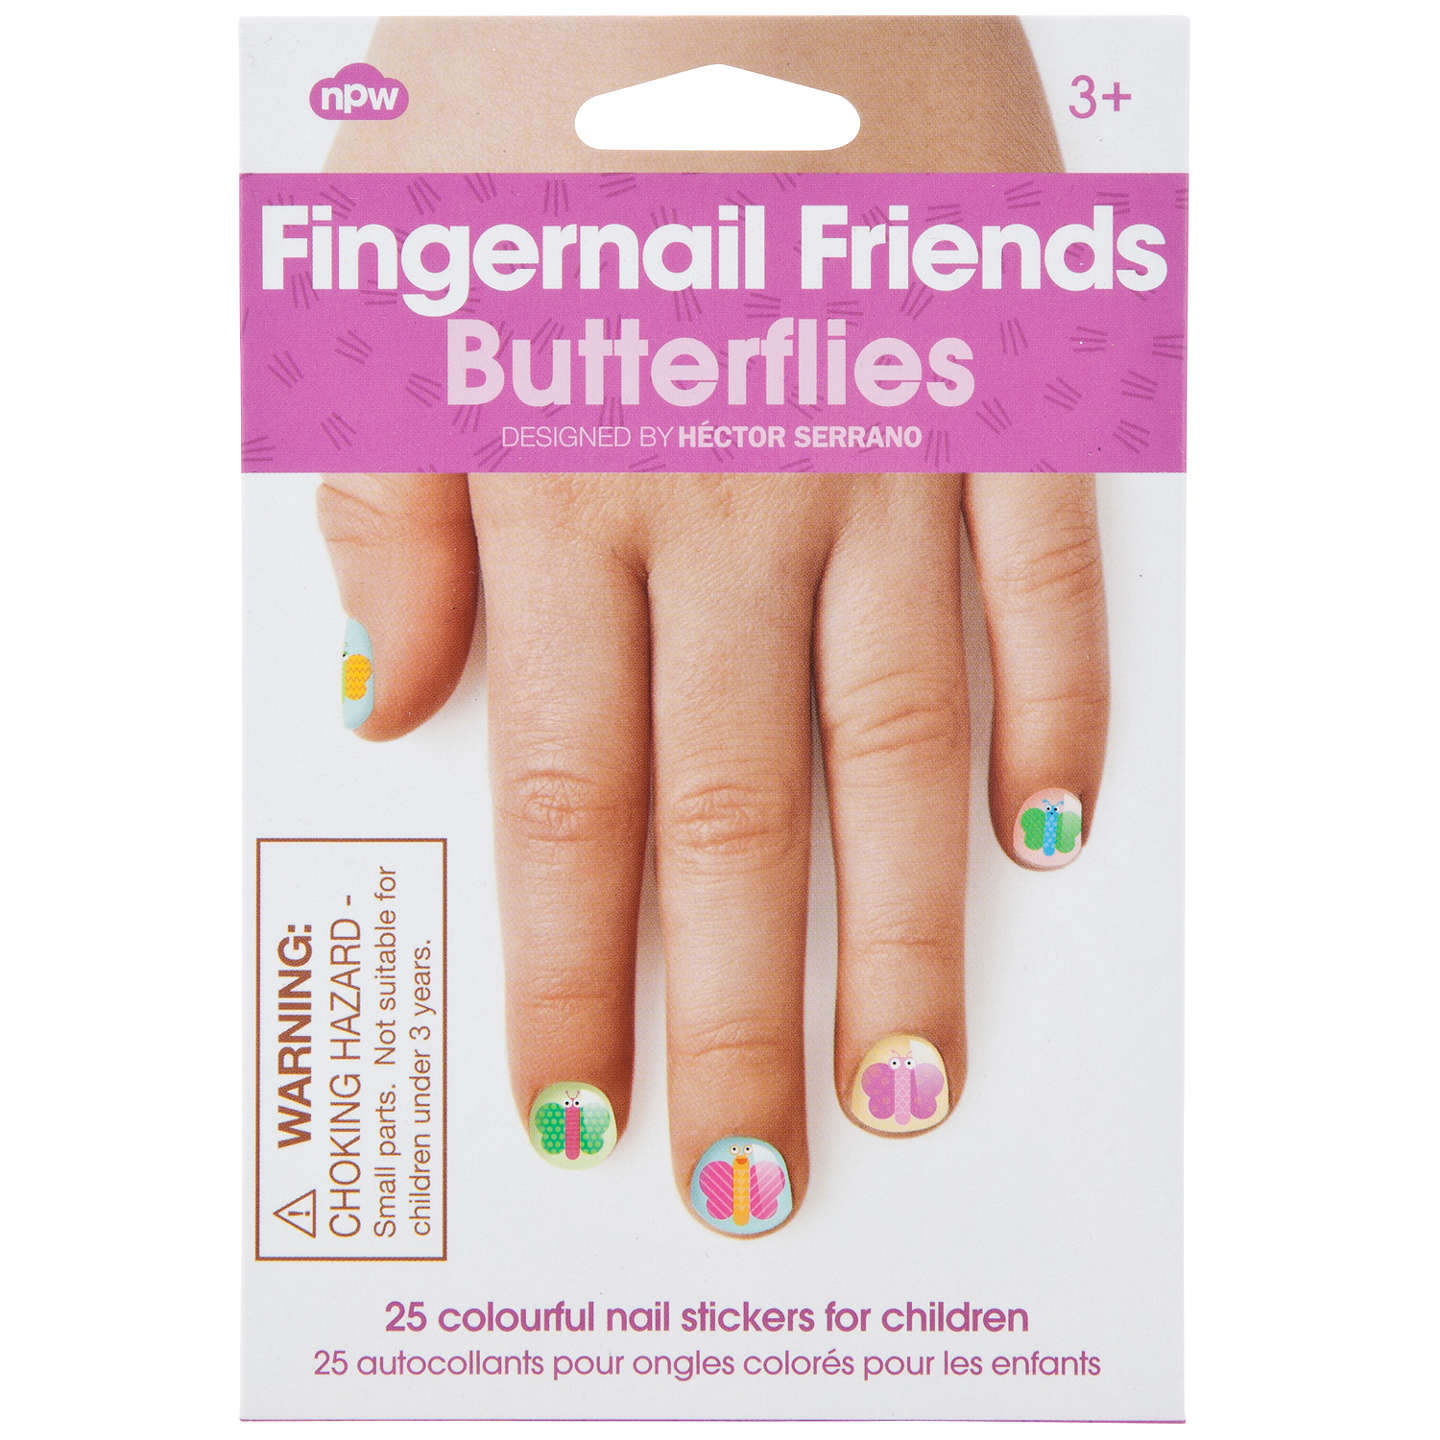 Fingernail Friends: Butterflies Nail Decals at John Lewis